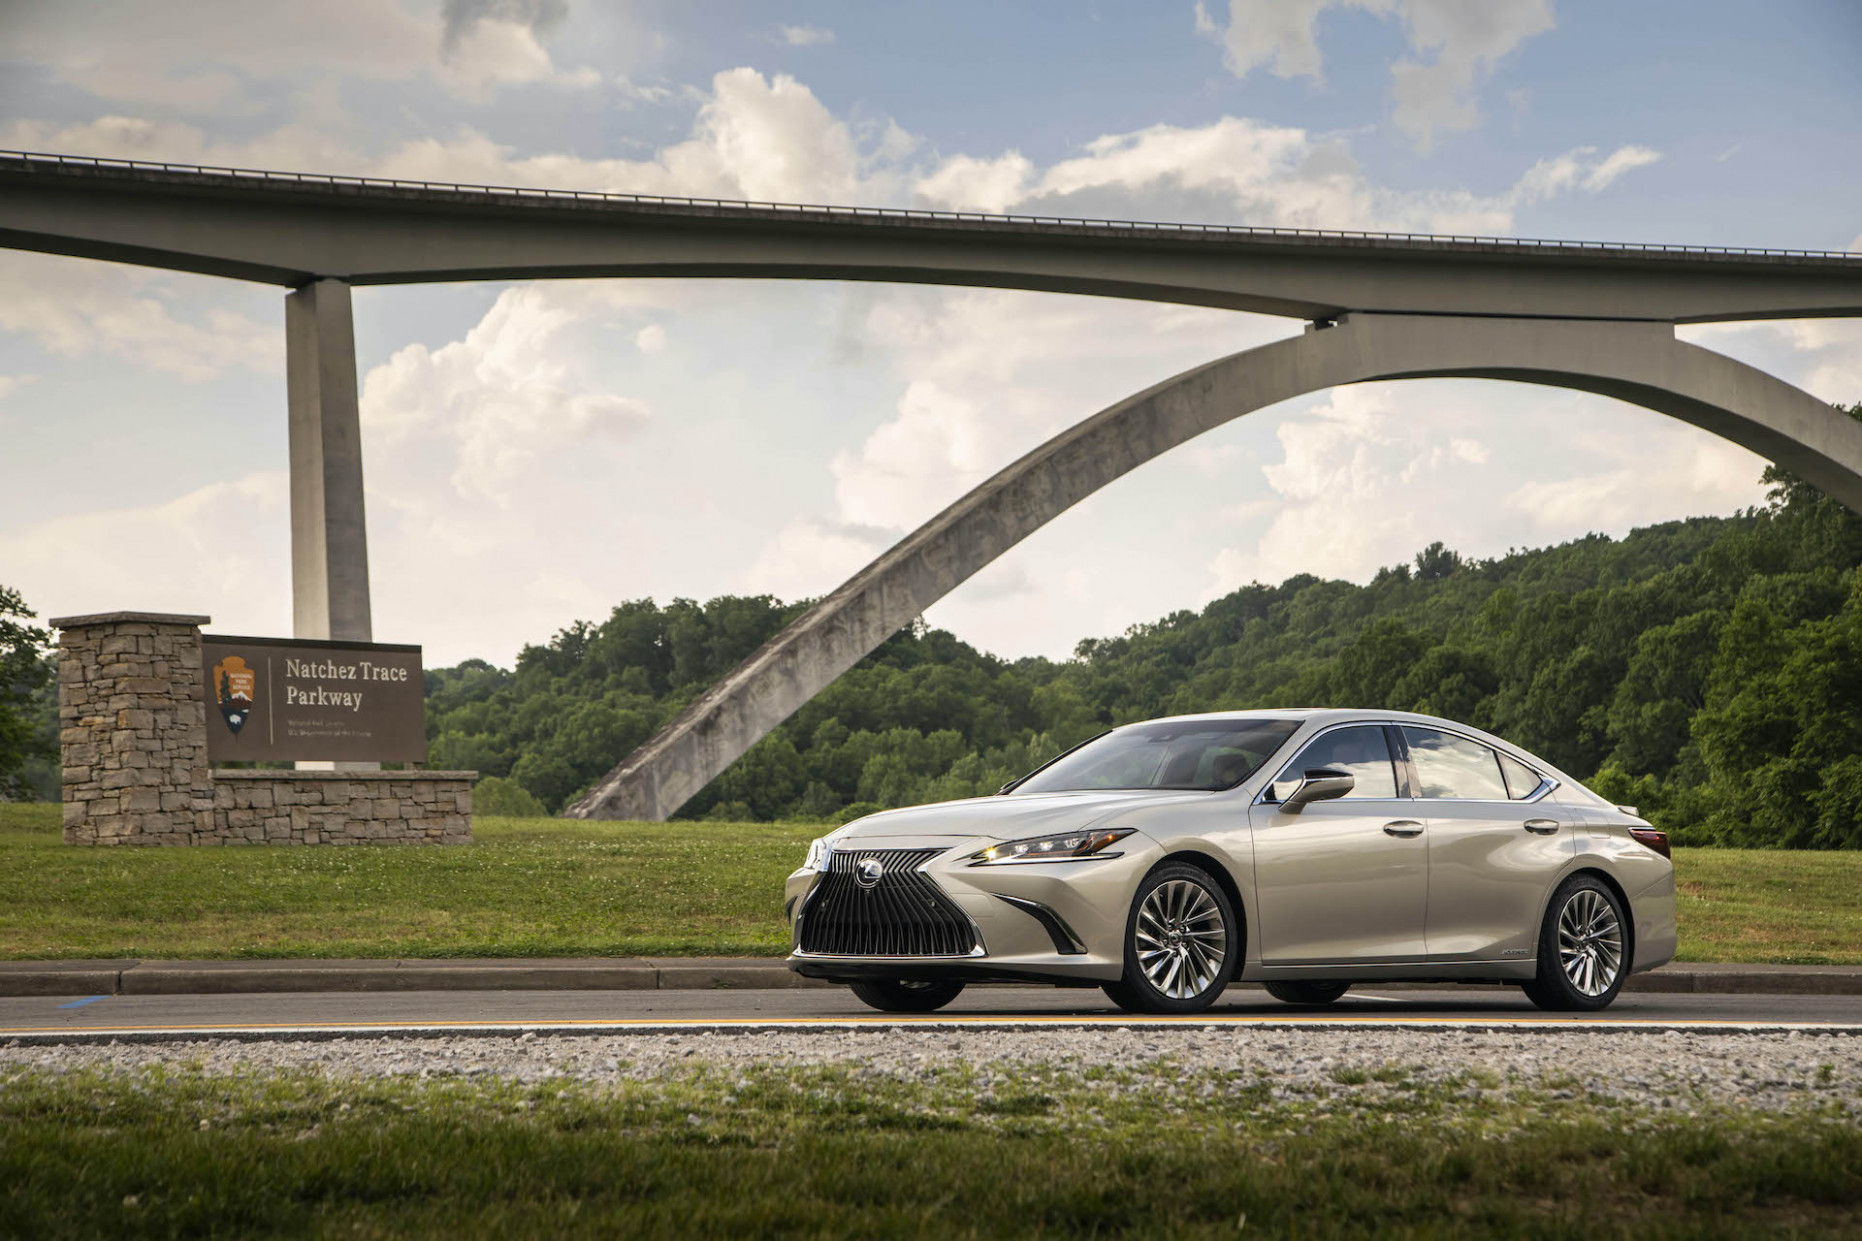 Review update: The 12 Lexus ES 12h shelters drivers in the ..